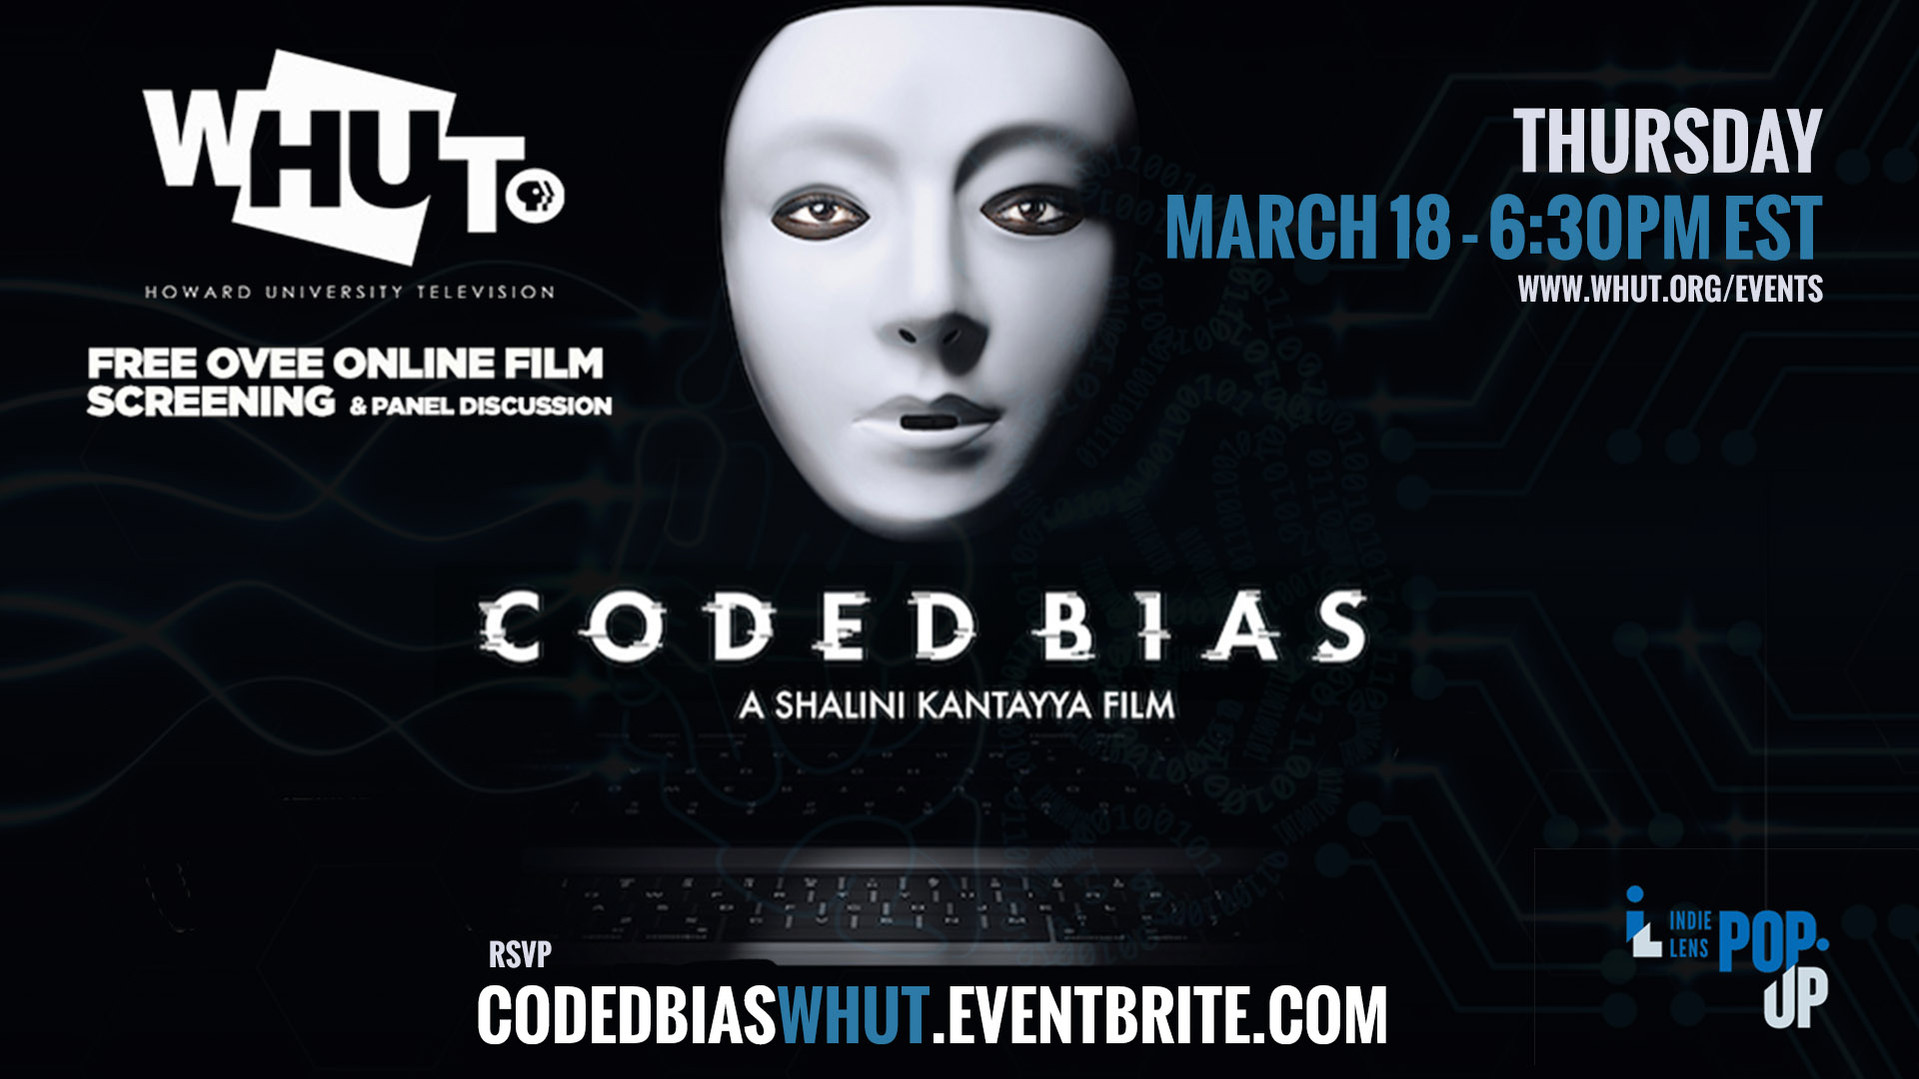 Free Film Screening & Panel Discussion of CODED BIAS